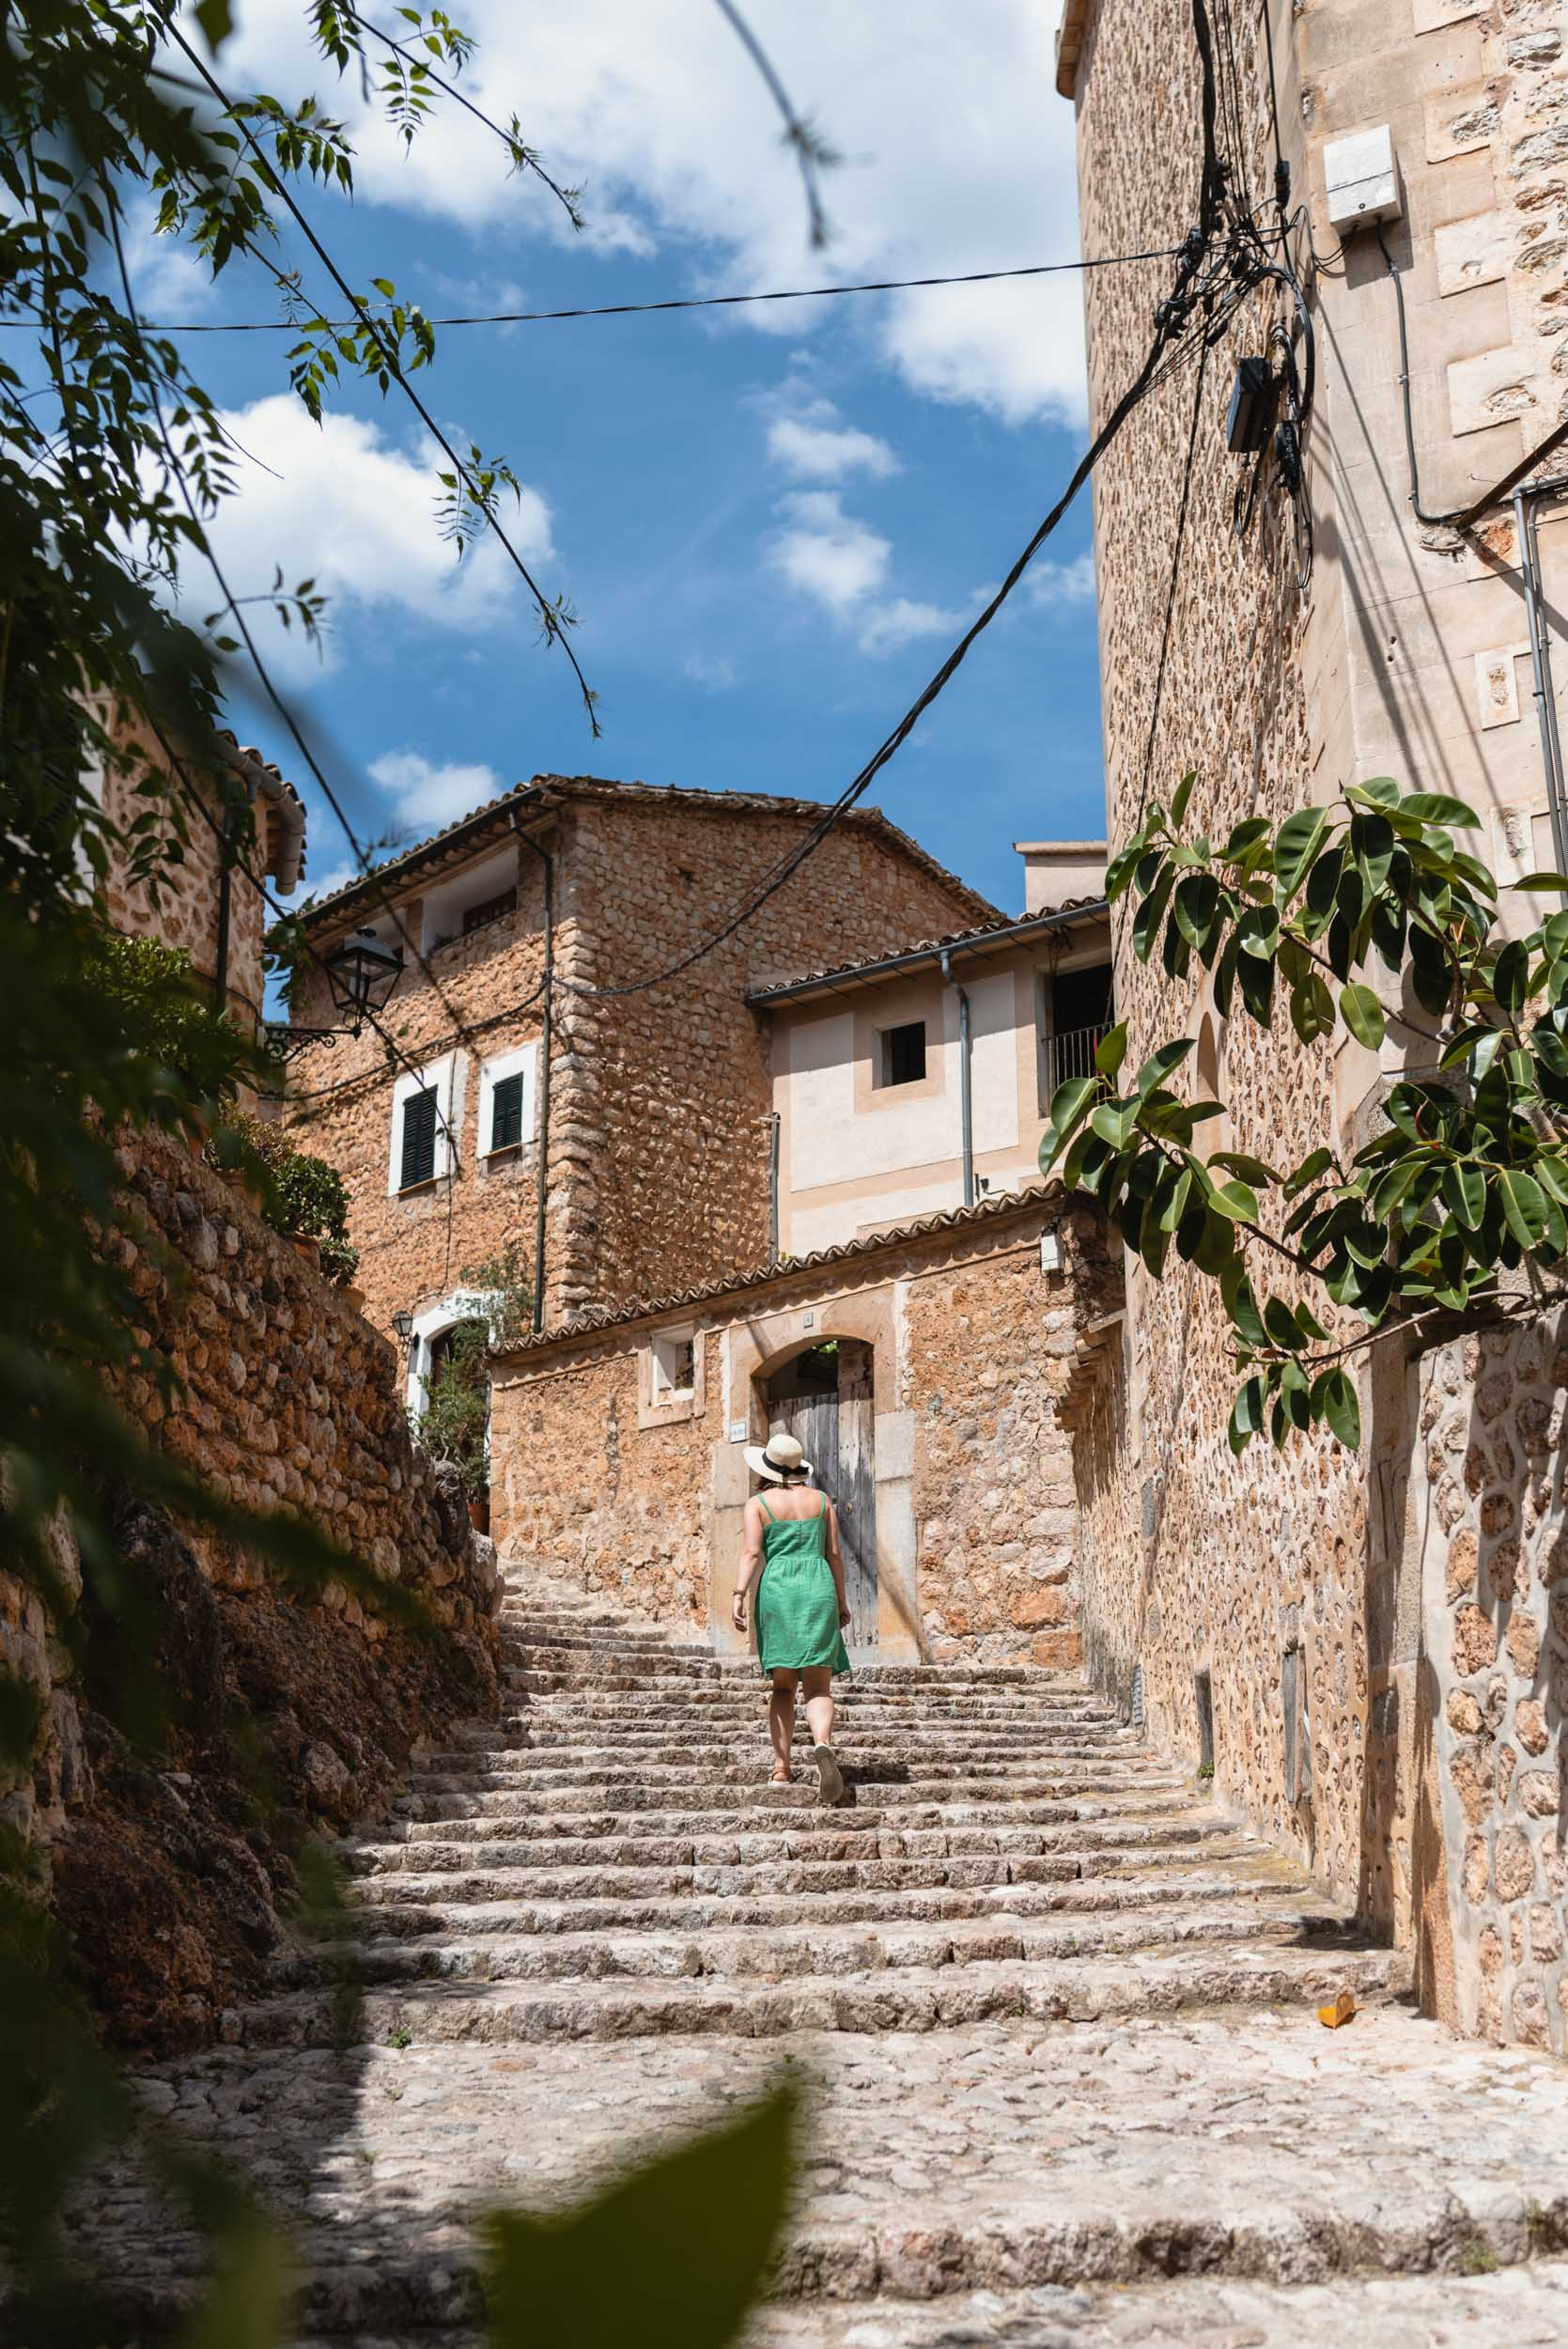 Woman in green dress walking through Fornalutx, Spain